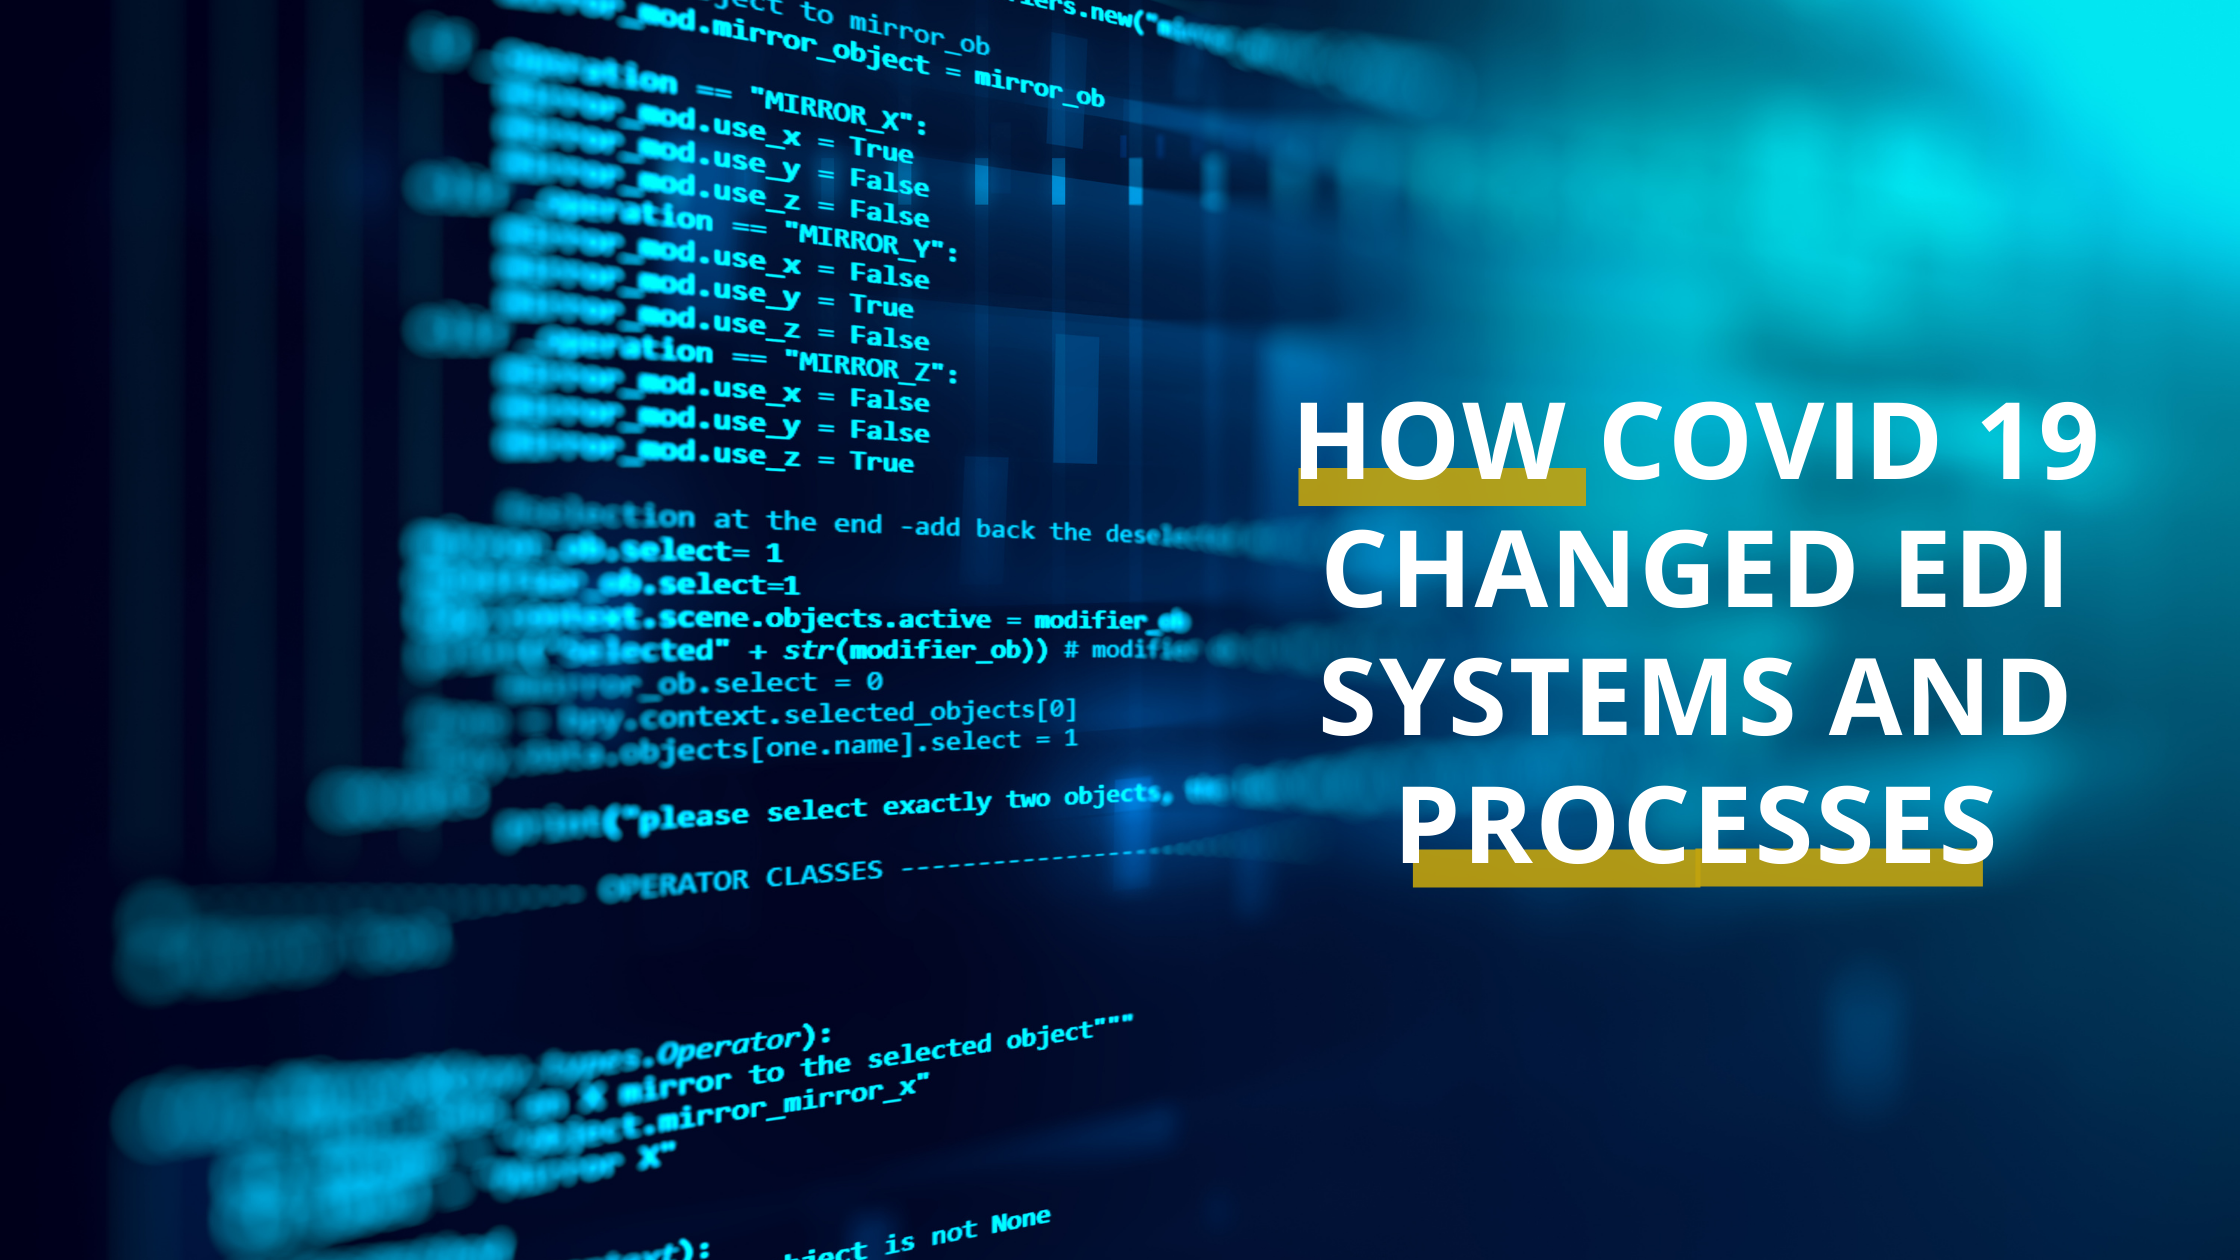 Do you need day-to-day EDI support but are unsure of the cost? Learn all about the implementation cost and saving potential of EDI solutions.